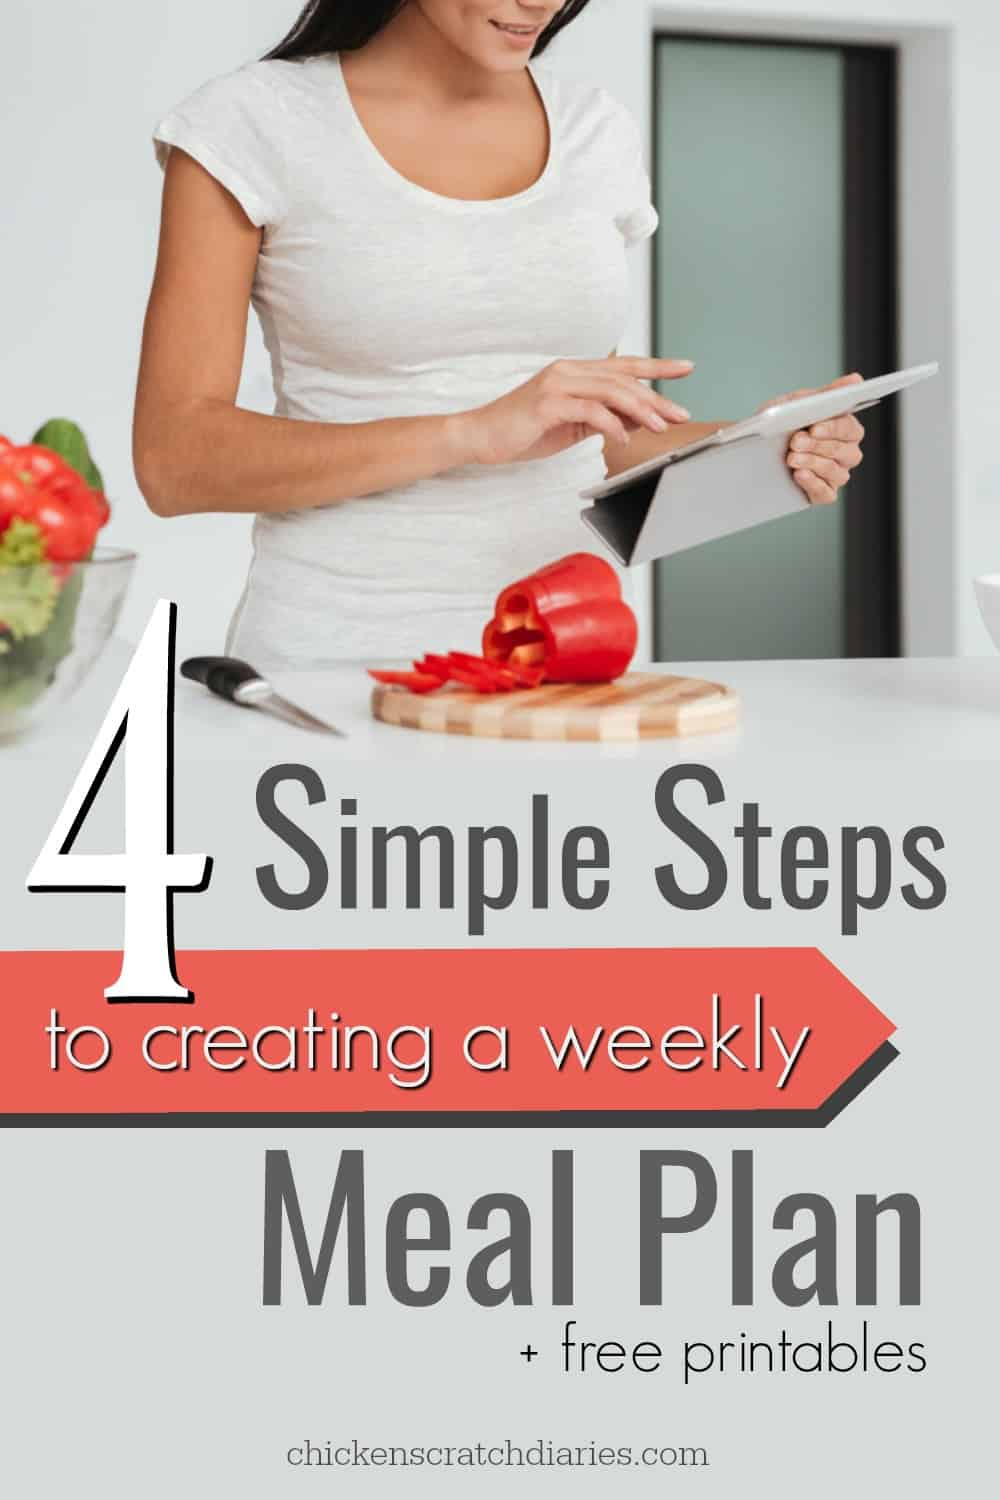 Meal Planning on a budget - free printables to get you started on a weekly meal plan you can easily maintain each week. Love these beautiful templates! #MealPlan #Budget #Printables